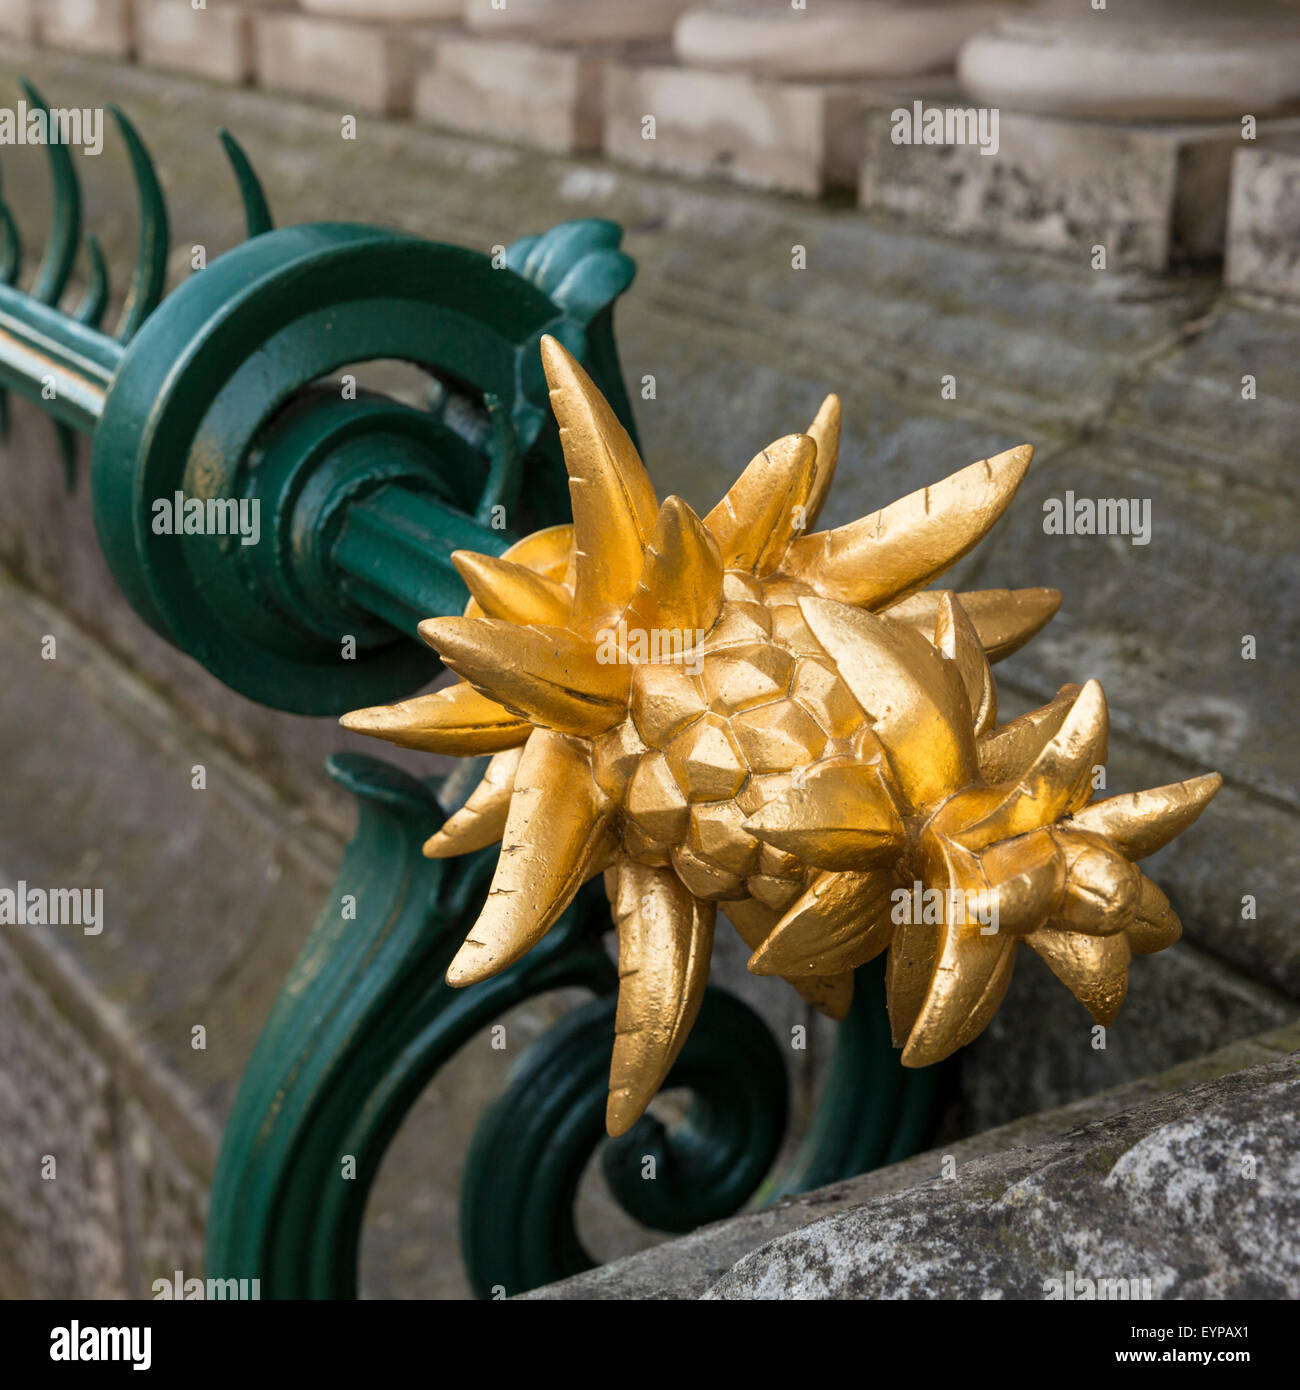 Spiked gilt pineapple at end of spiked fence limiting entry to the Fitzwilliam Museum in Cambridge, England, UK - Stock Image